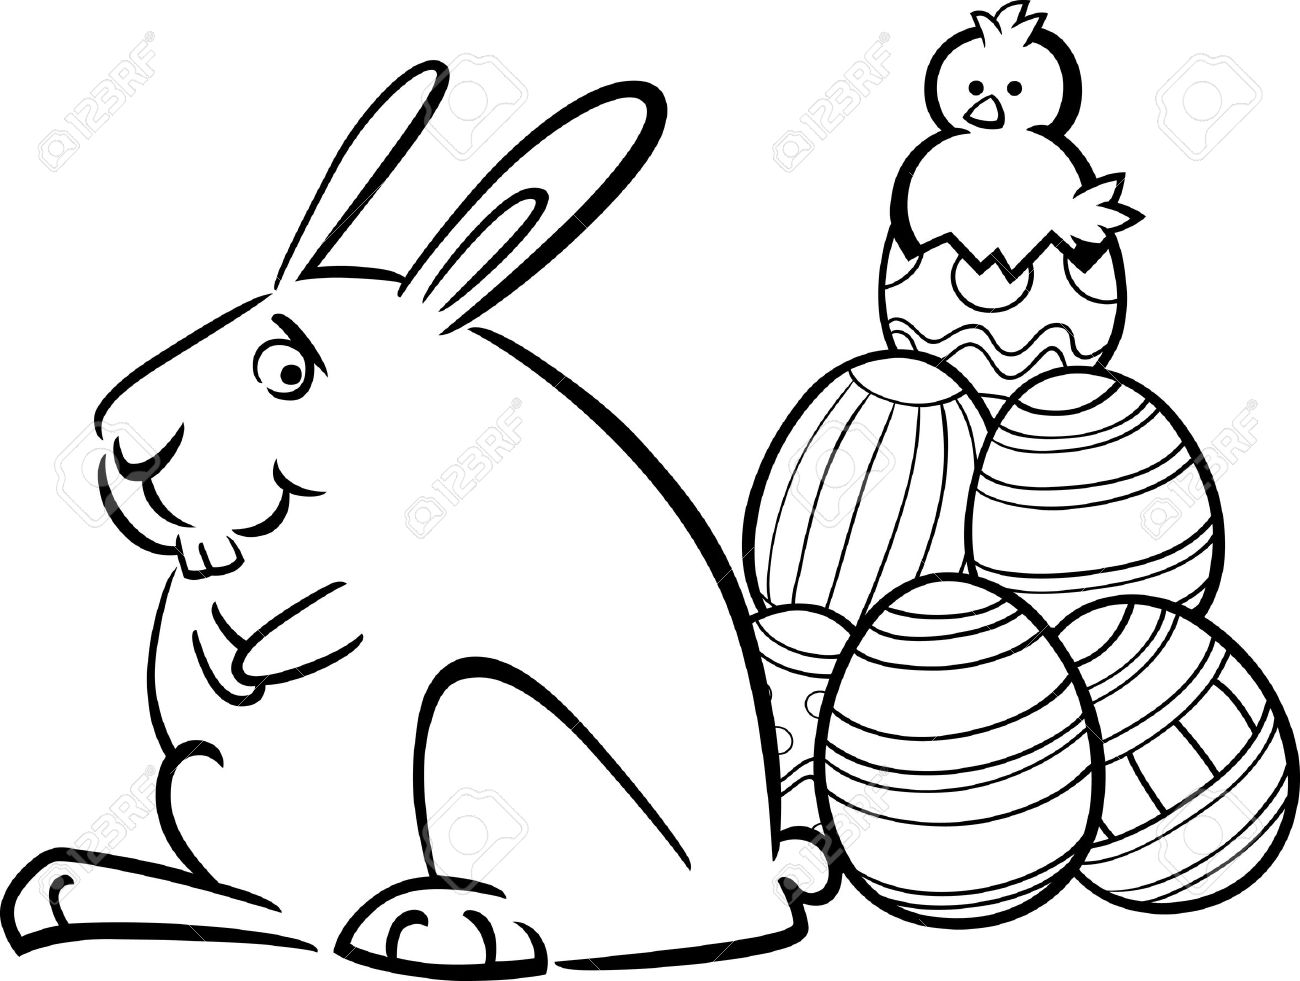 942 easter coloring page stock illustrations cliparts and royalty